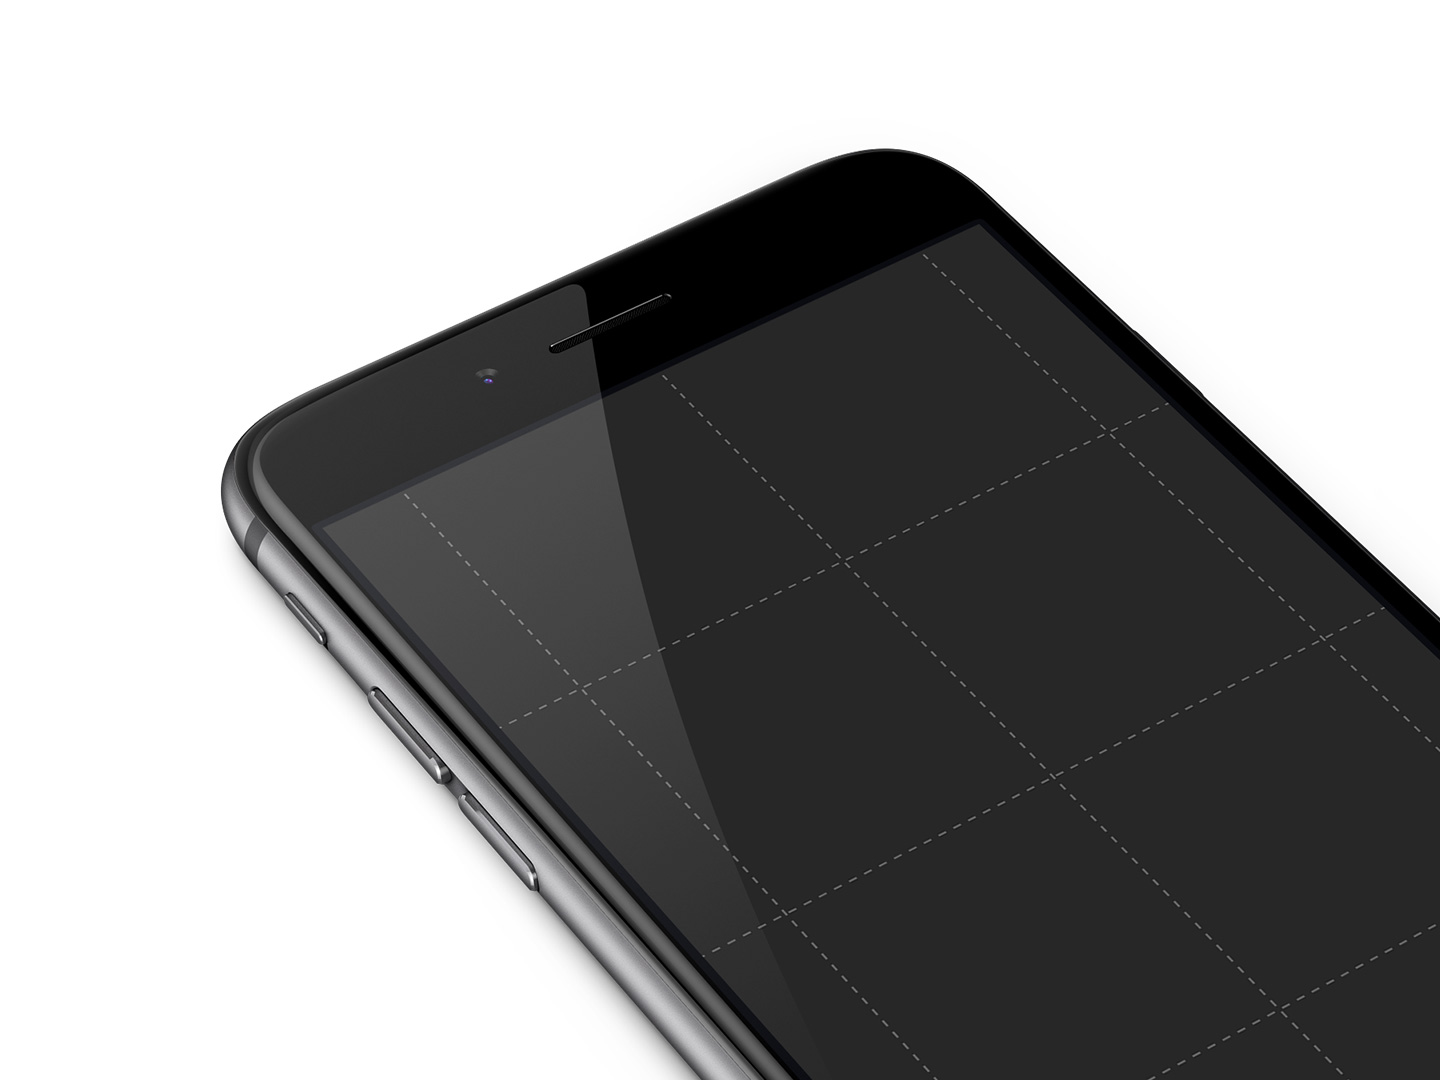 iPhone-6-4,7-inch-Template_2